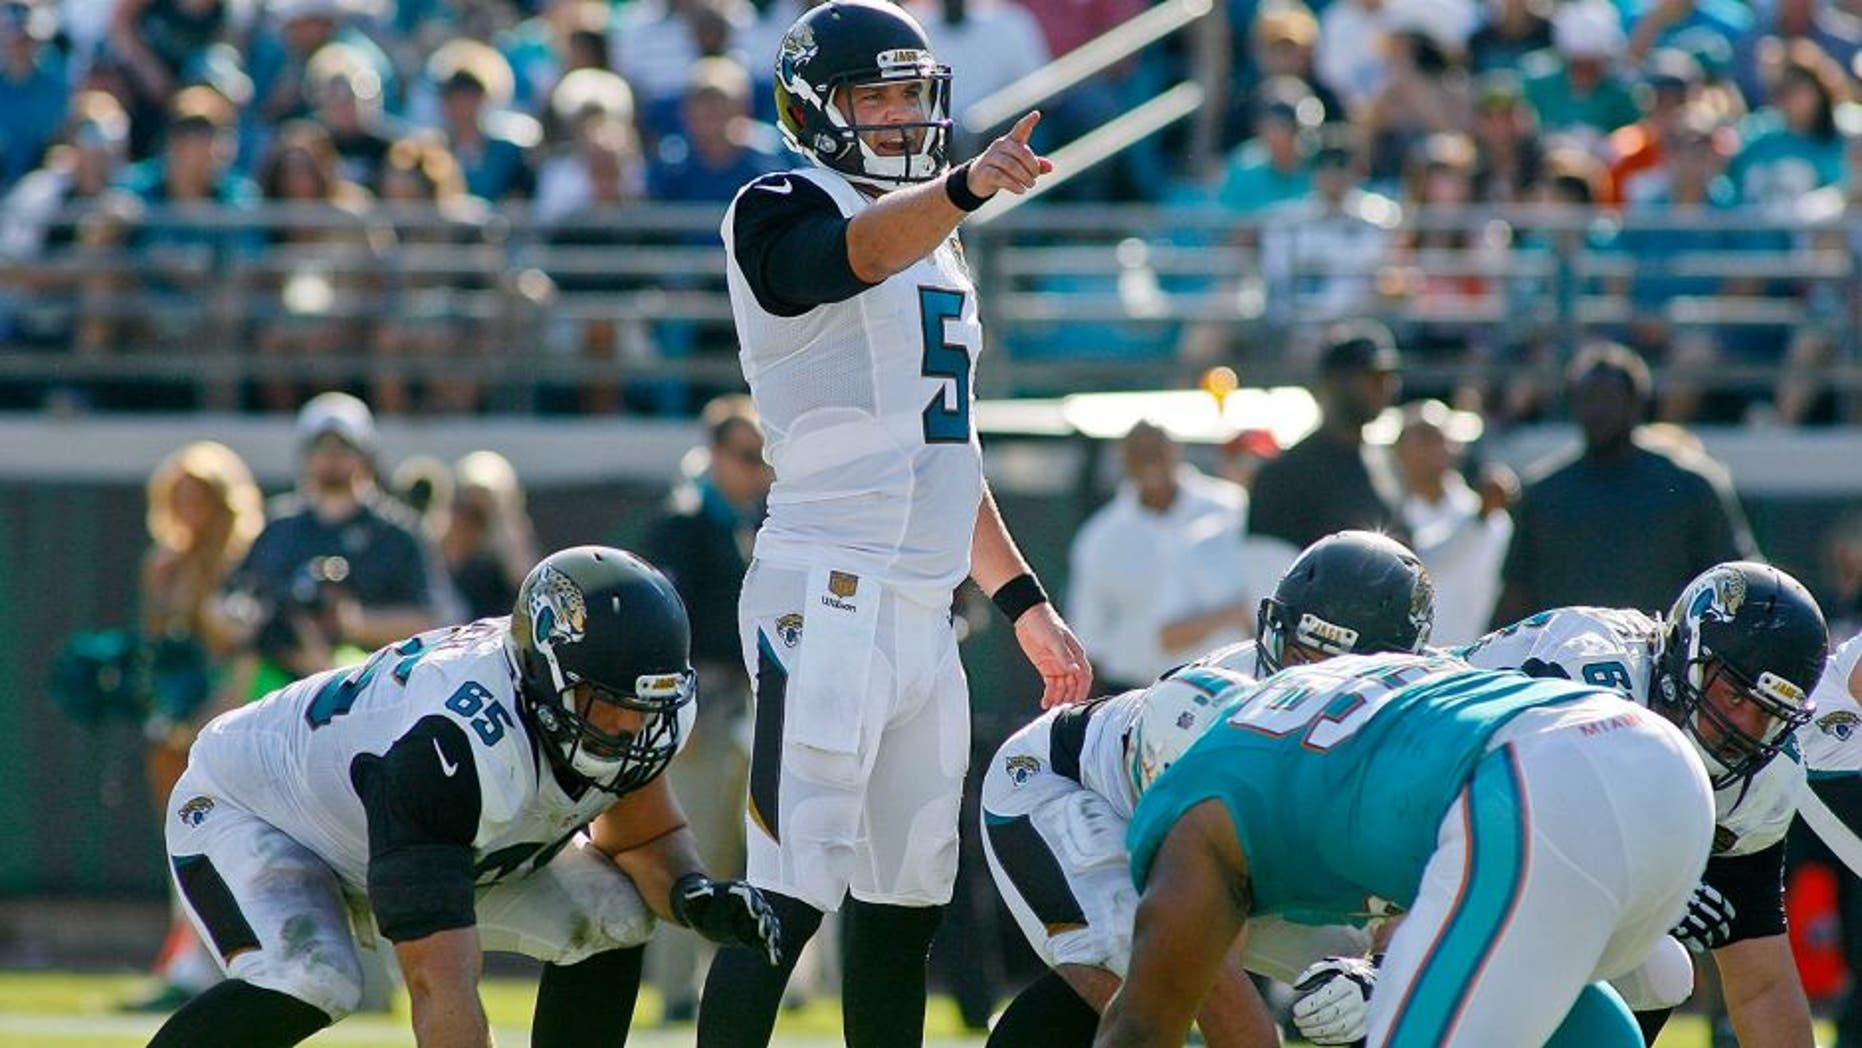 Sep 20, 2015; Jacksonville, FL, USA; Jacksonville Jaguars quarterback Blake Bortles (5) points at the line of scrimmage in the second quarter against the Miami Dolphins at EverBank Field. Mandatory Credit: Phil Sears-USA TODAY Sports